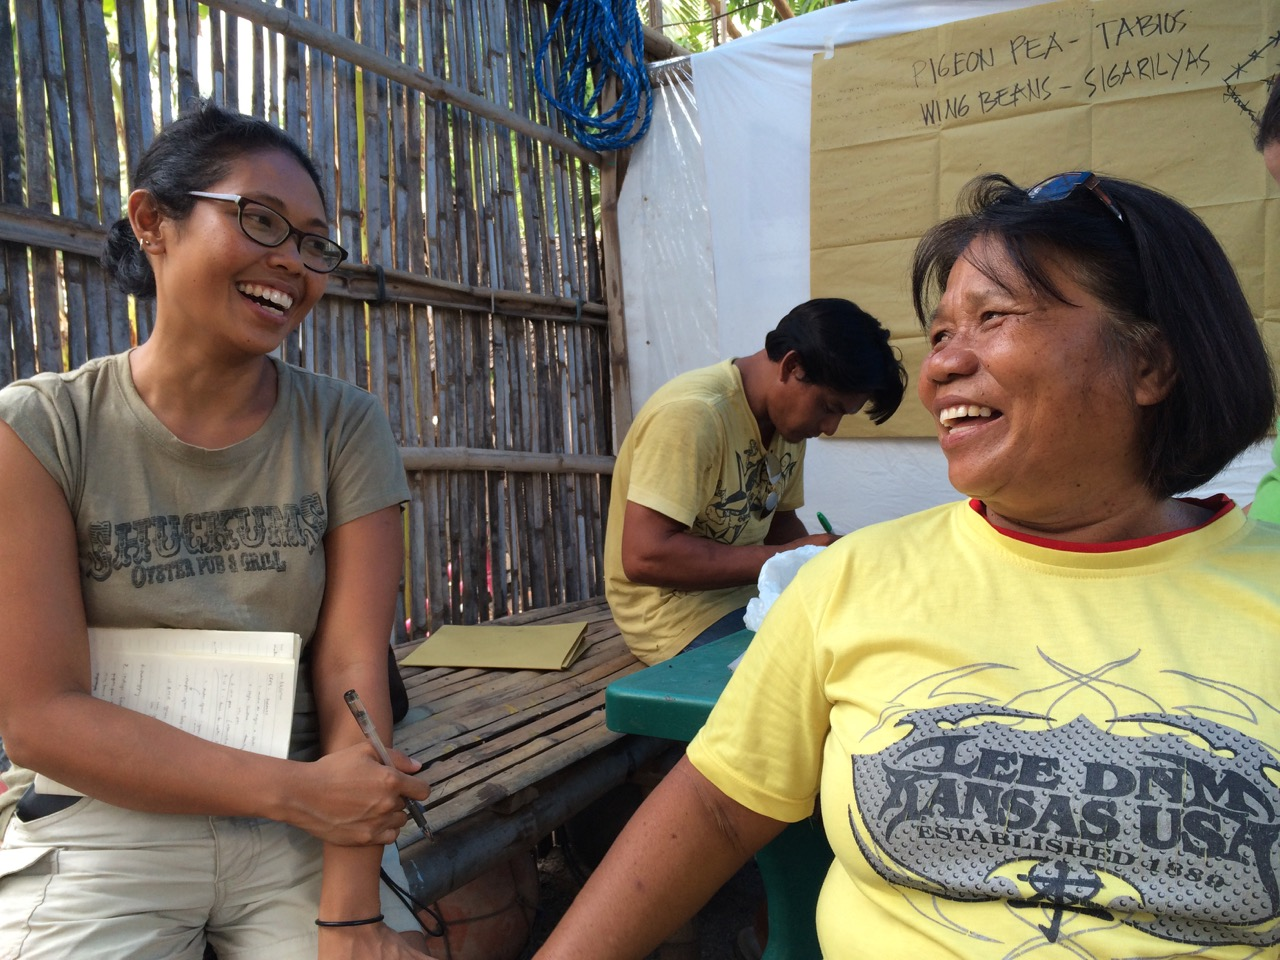 Empowering women post-Super Typhoon Haiyan: Two Filipina women exchange big smiles, Bantayan Island, Visayas, Philippines, 2015. Photo by Cecilia L